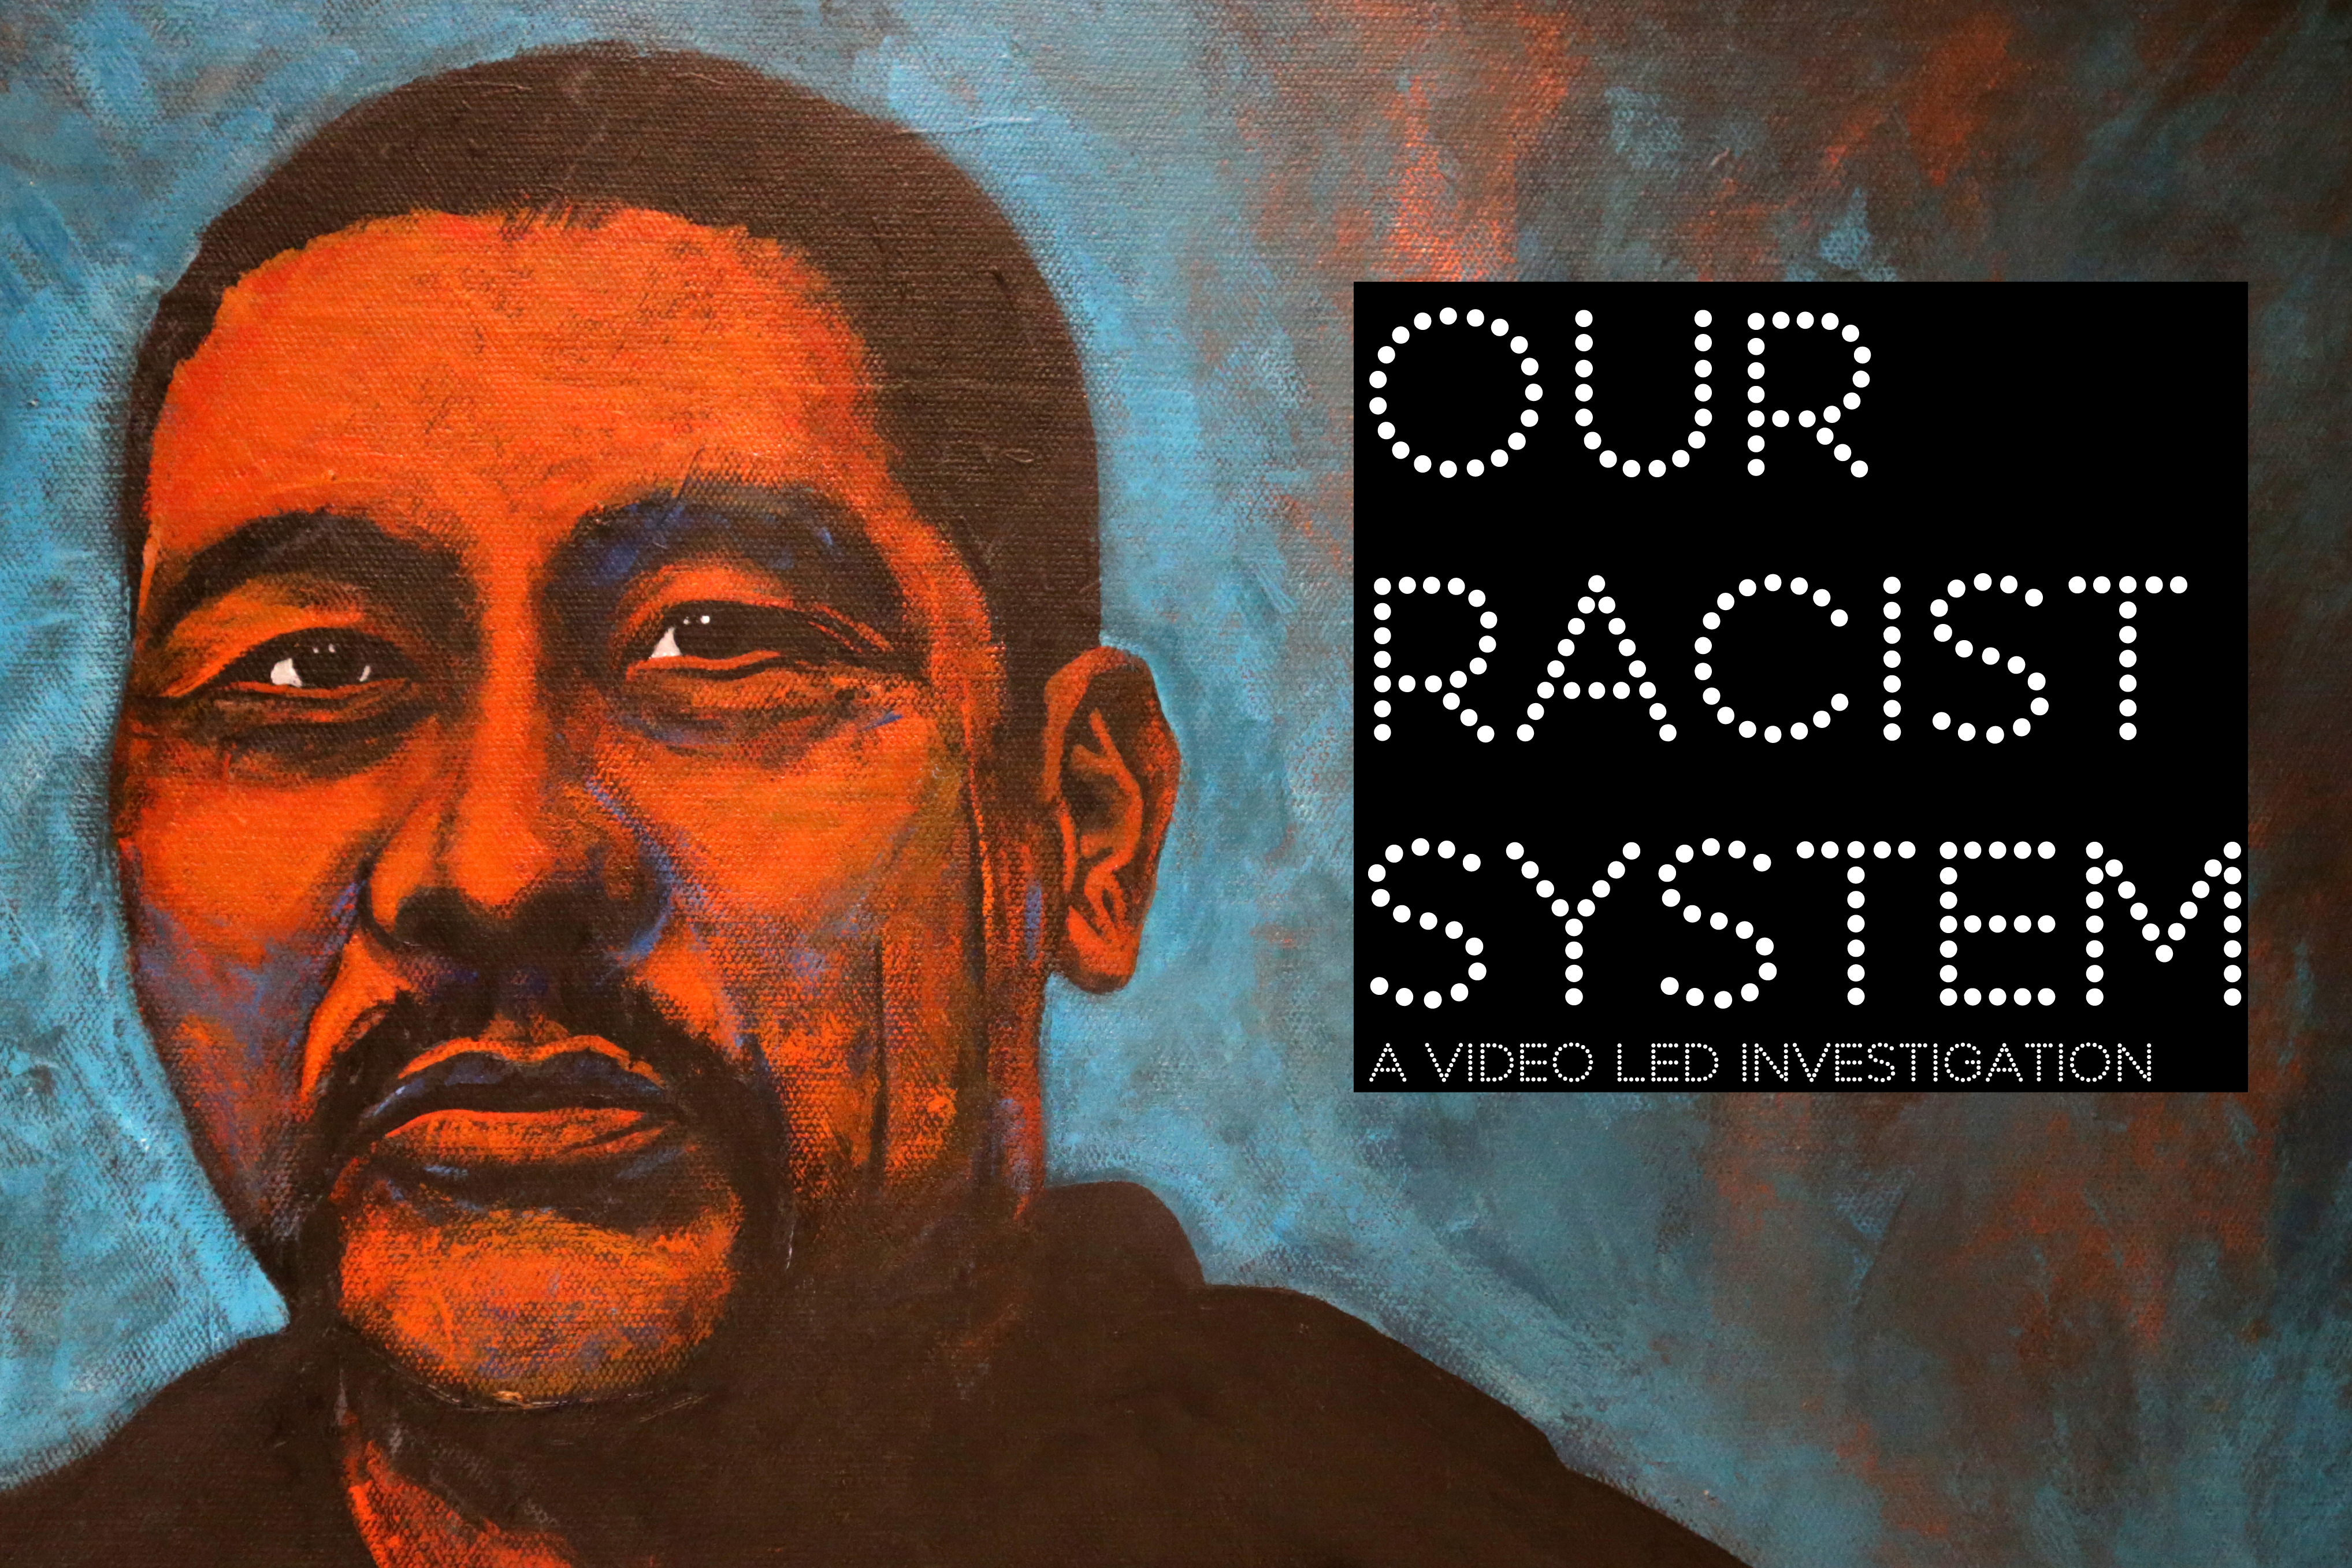 racism justice system It took the police killing of an unarmed black teenager to start a long overdue national conversation about racism in the us criminal justice system.